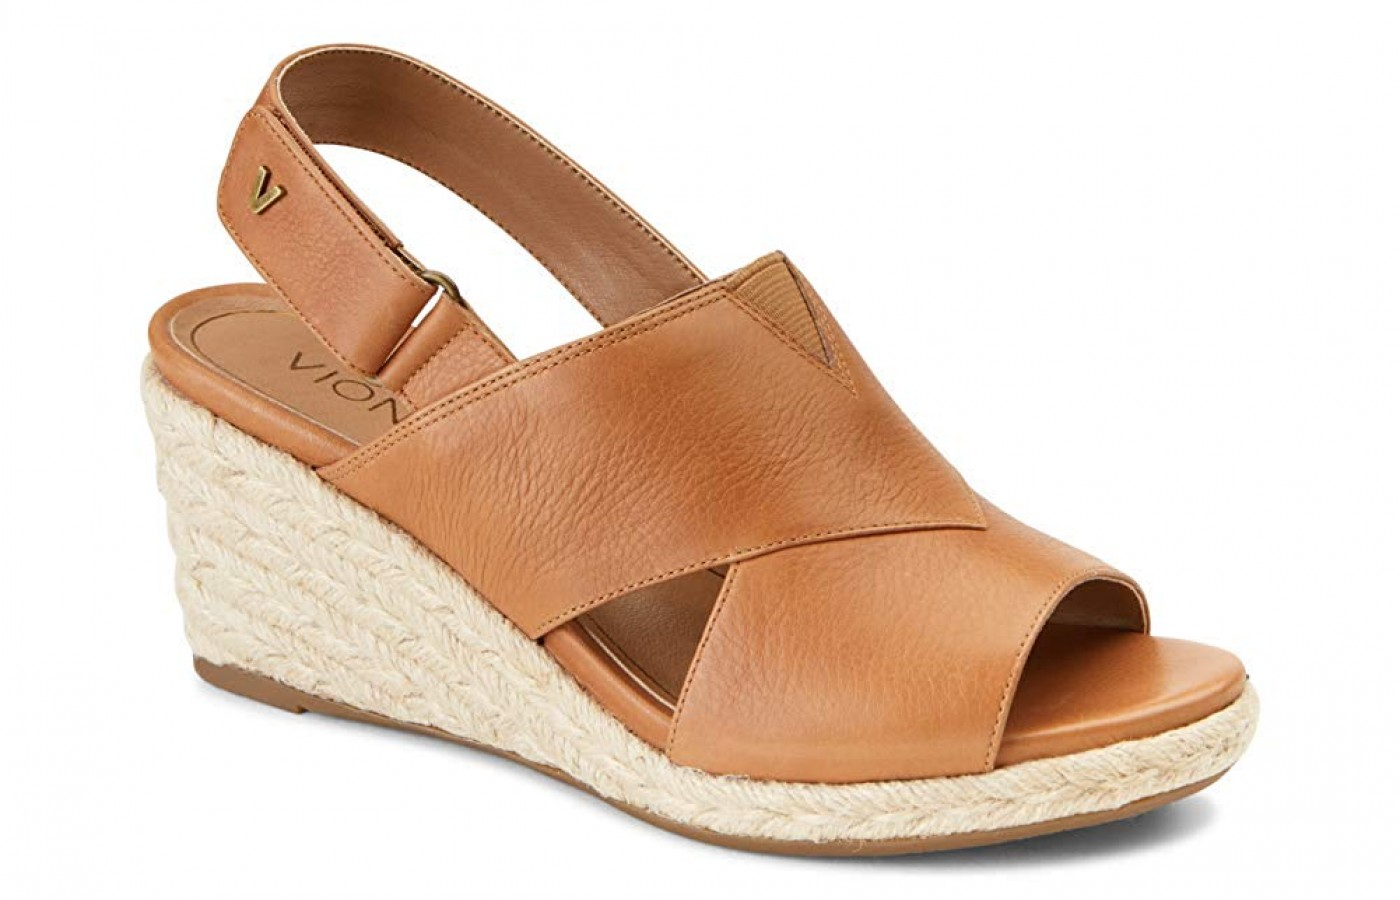 Vionic Tulum Zamar wedge sandal is incredibly fashionable